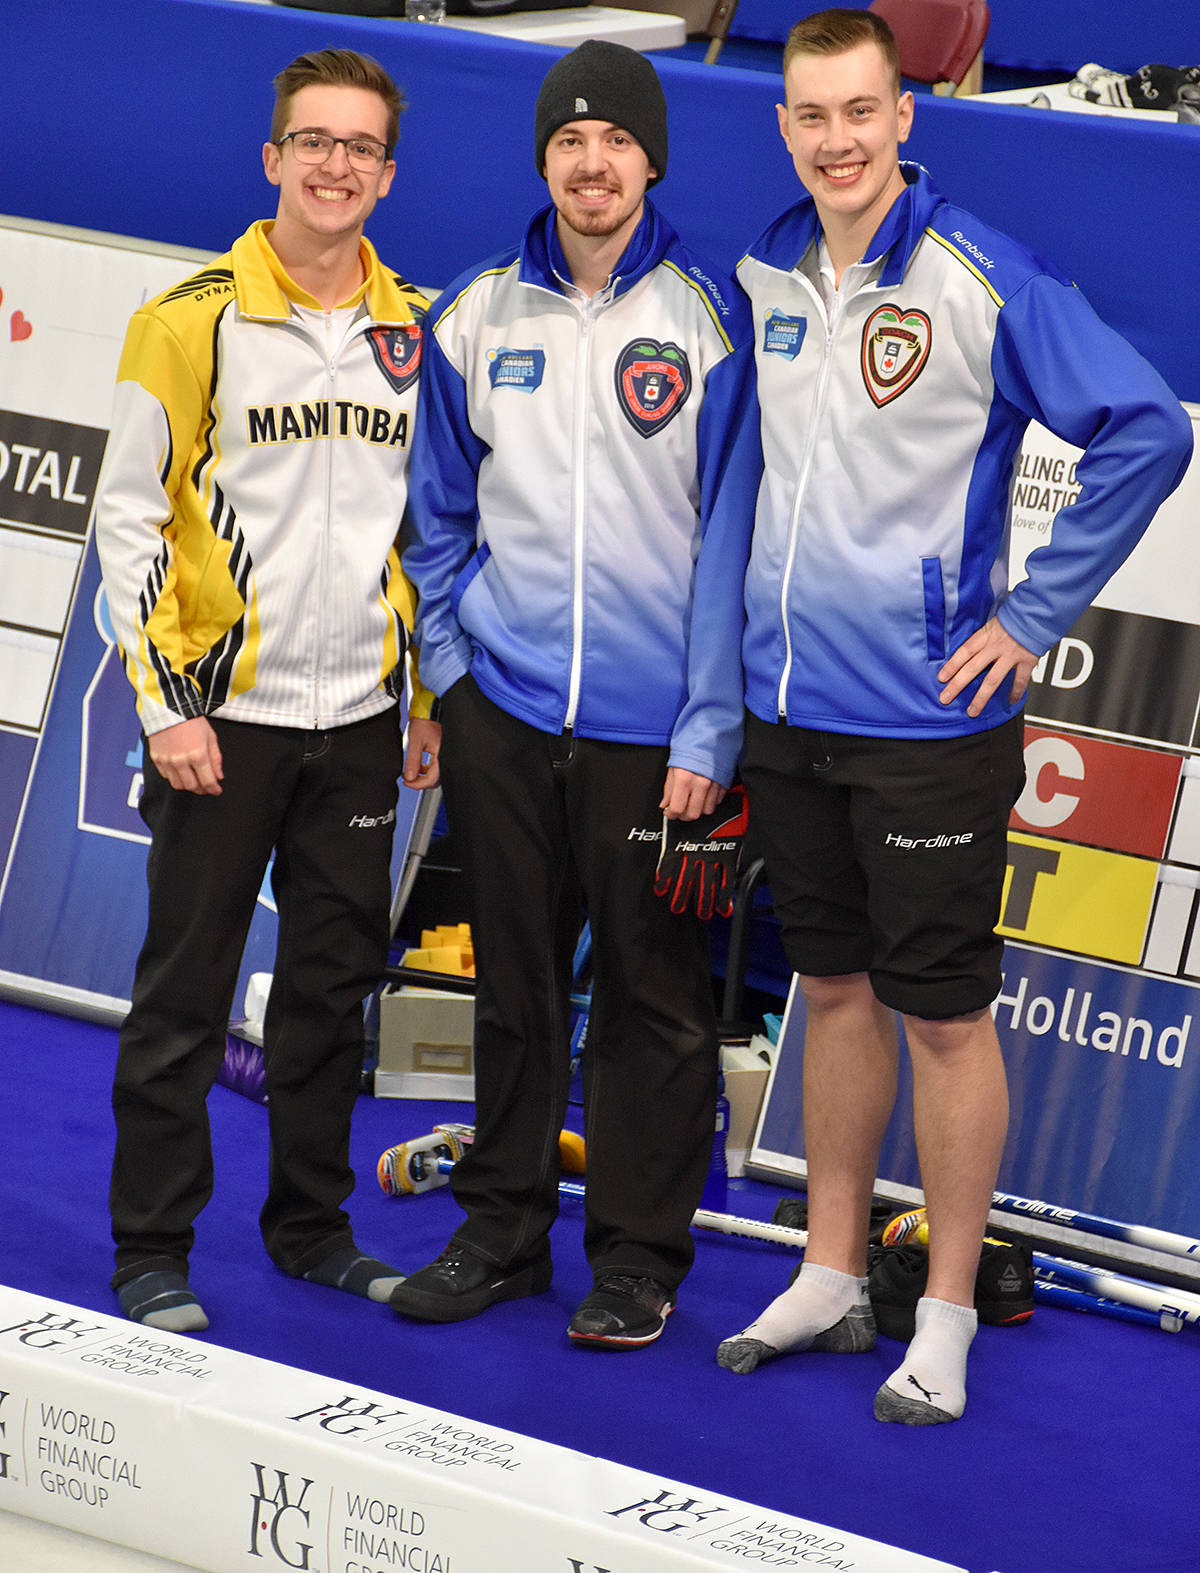 Jacques Gauthier of Manitoba had a chance to visit with his cousins off the ice during the junior nationals in Quebec. Now, he's joining his relatives Tyler and Jordan Tardi as a fifth at the world juniors in Scotland next month. (Special to the Langley Advance)